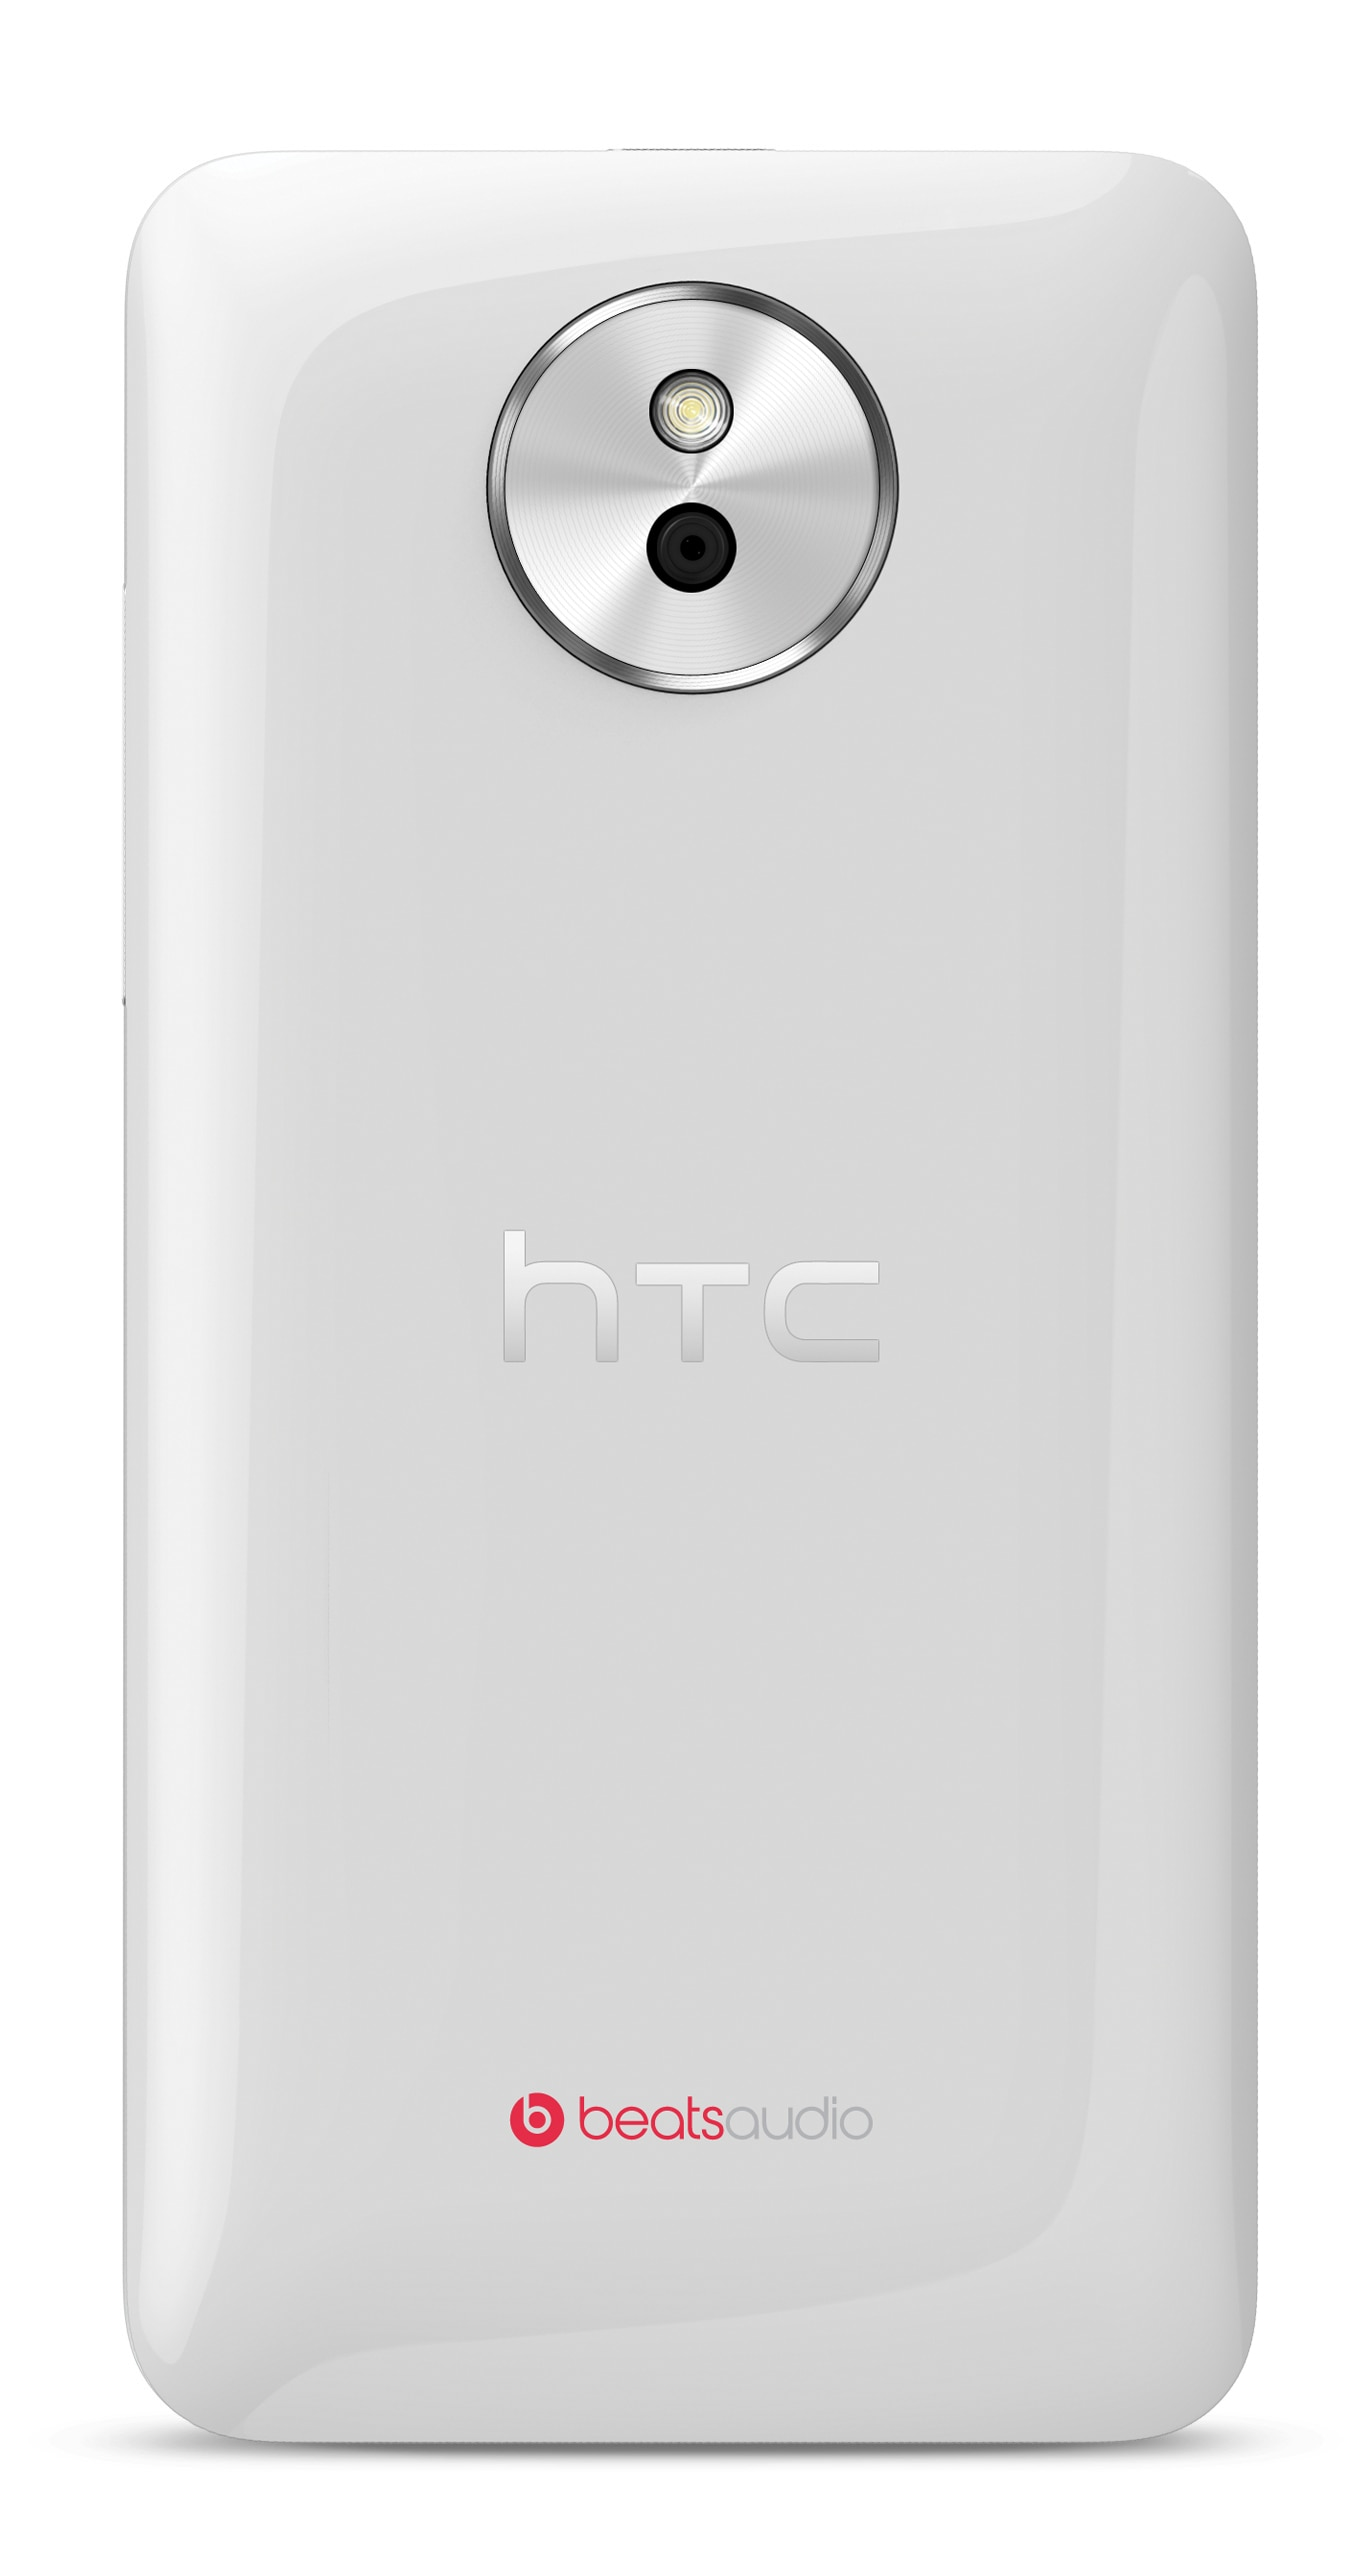 htc desire 600c dual sim specification offer computer and